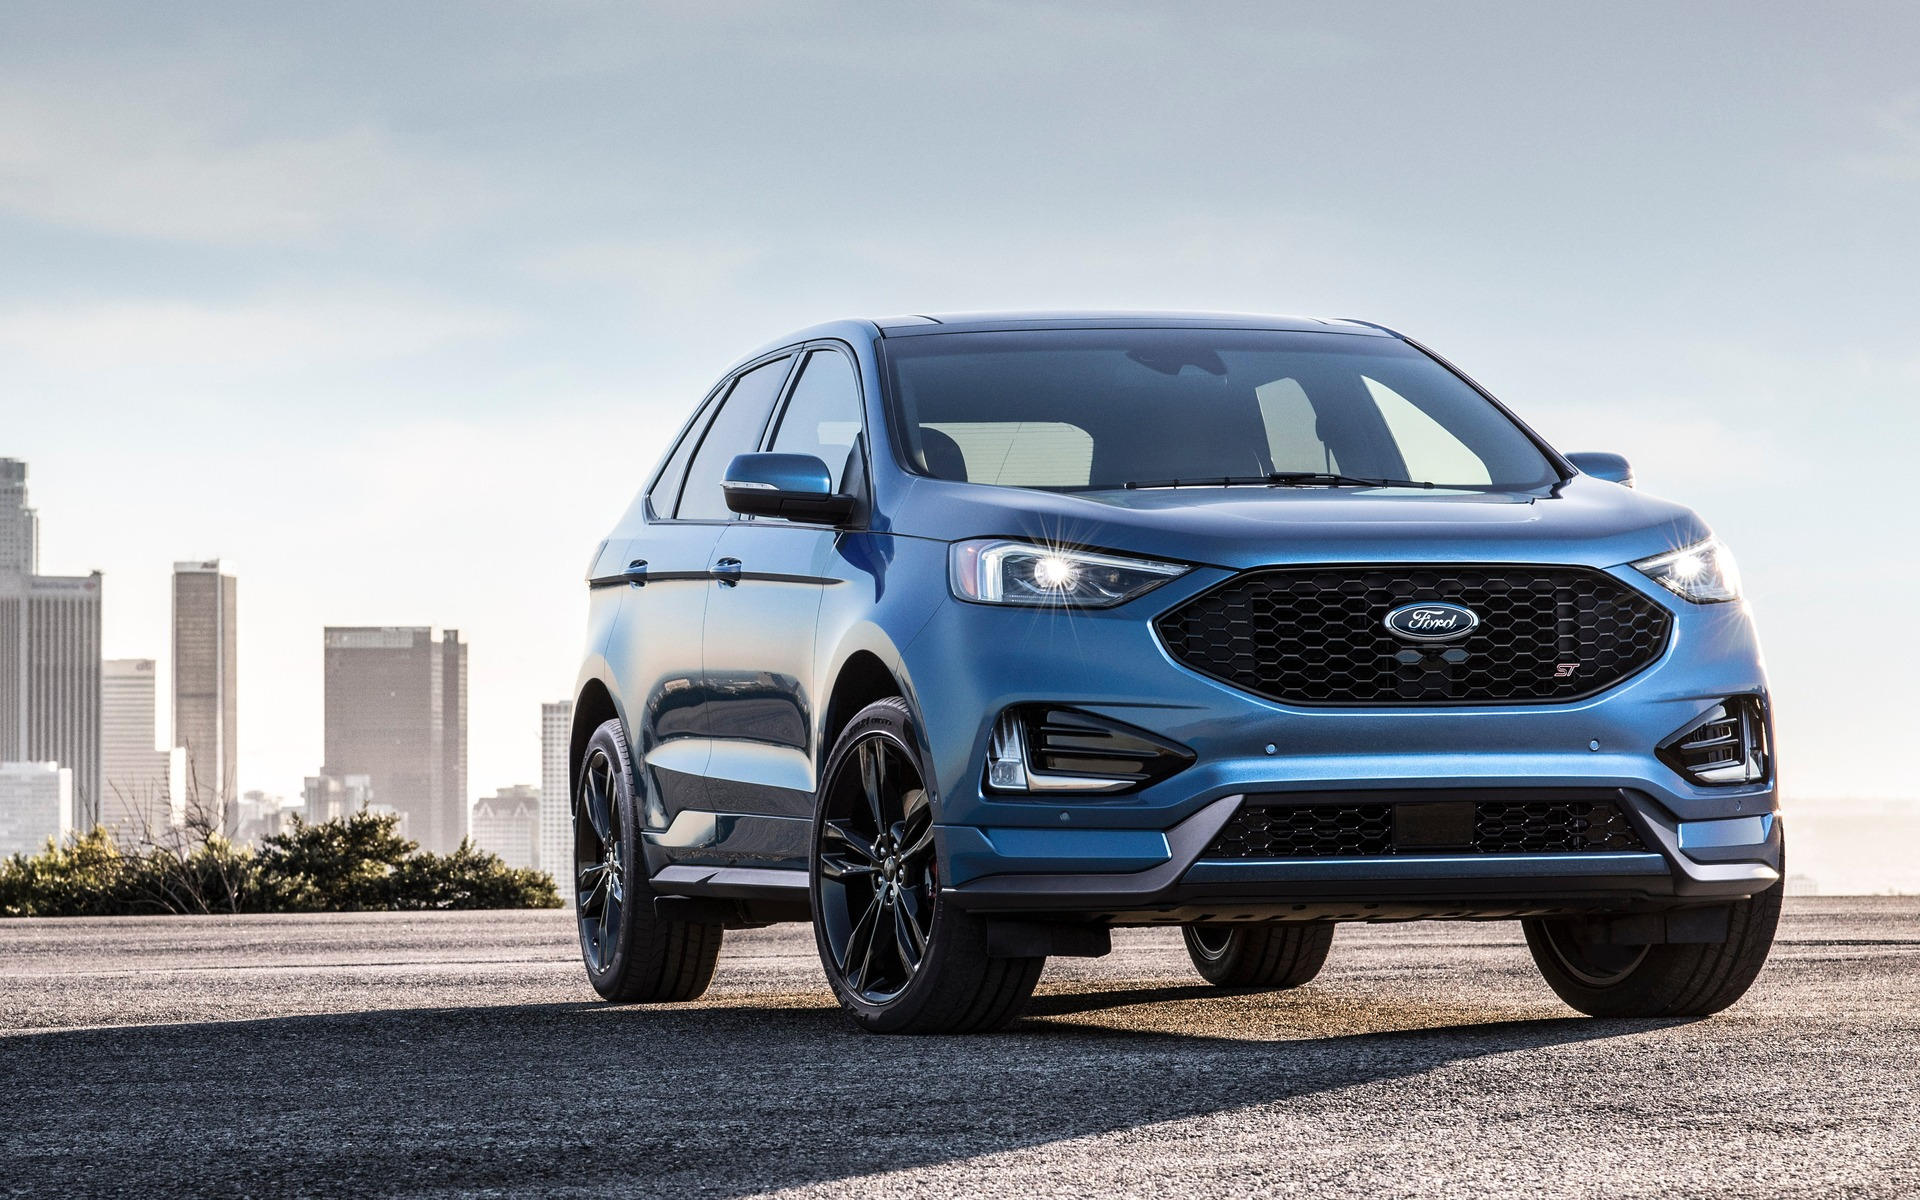 voici le nouveau ford edge 2019 guide auto. Black Bedroom Furniture Sets. Home Design Ideas